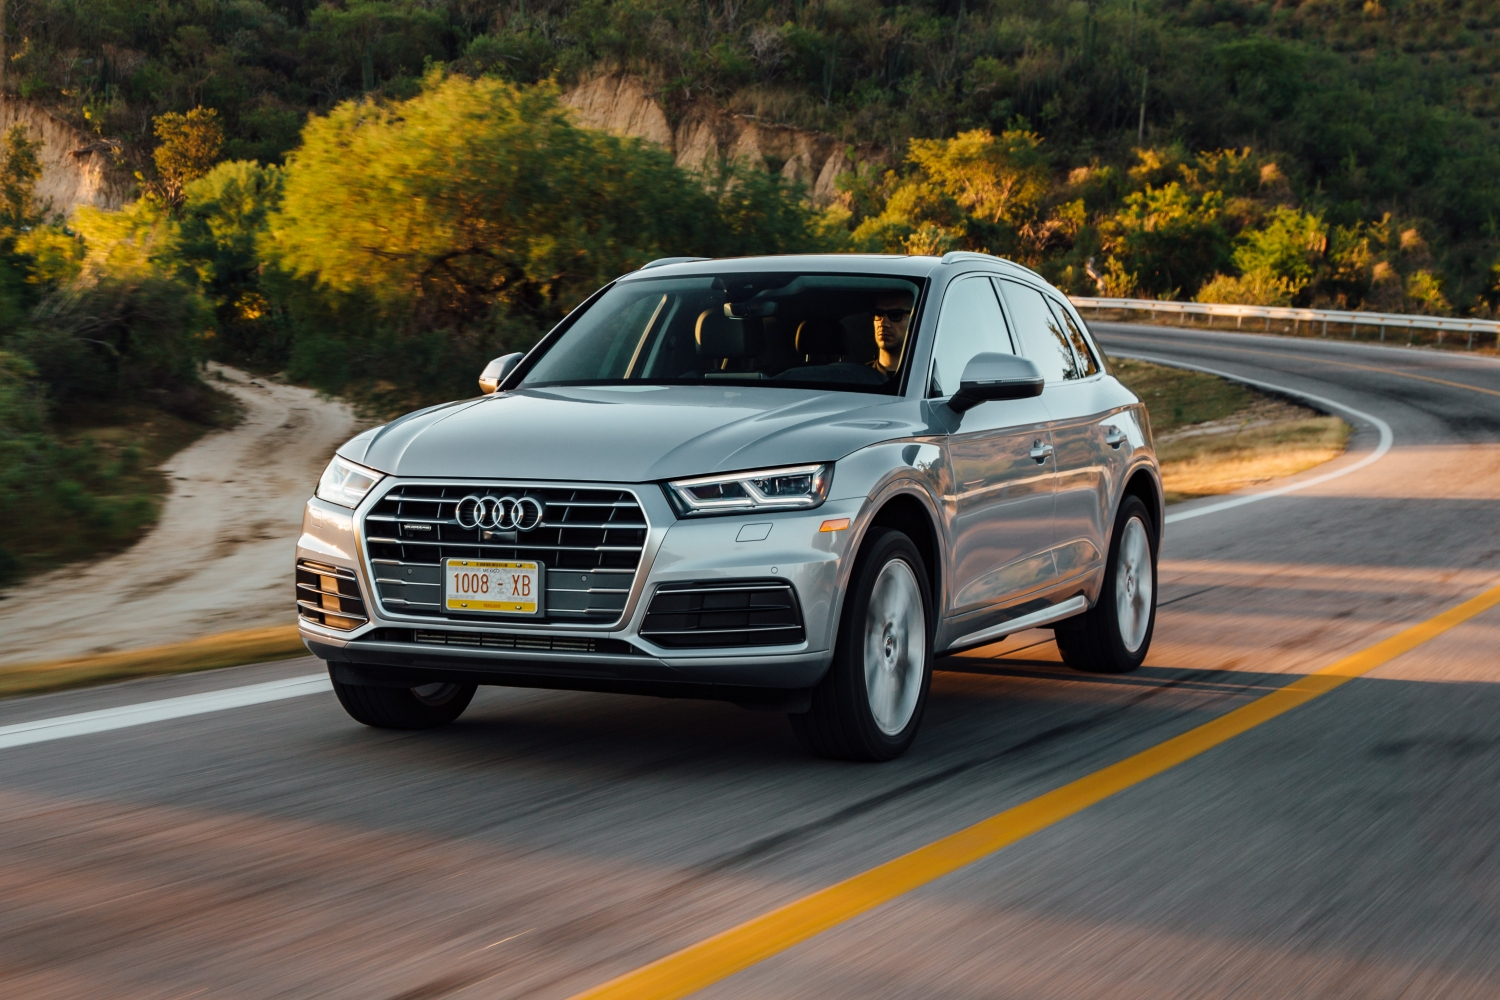 2018 audi q5 first drive review: everything you expect, in a better